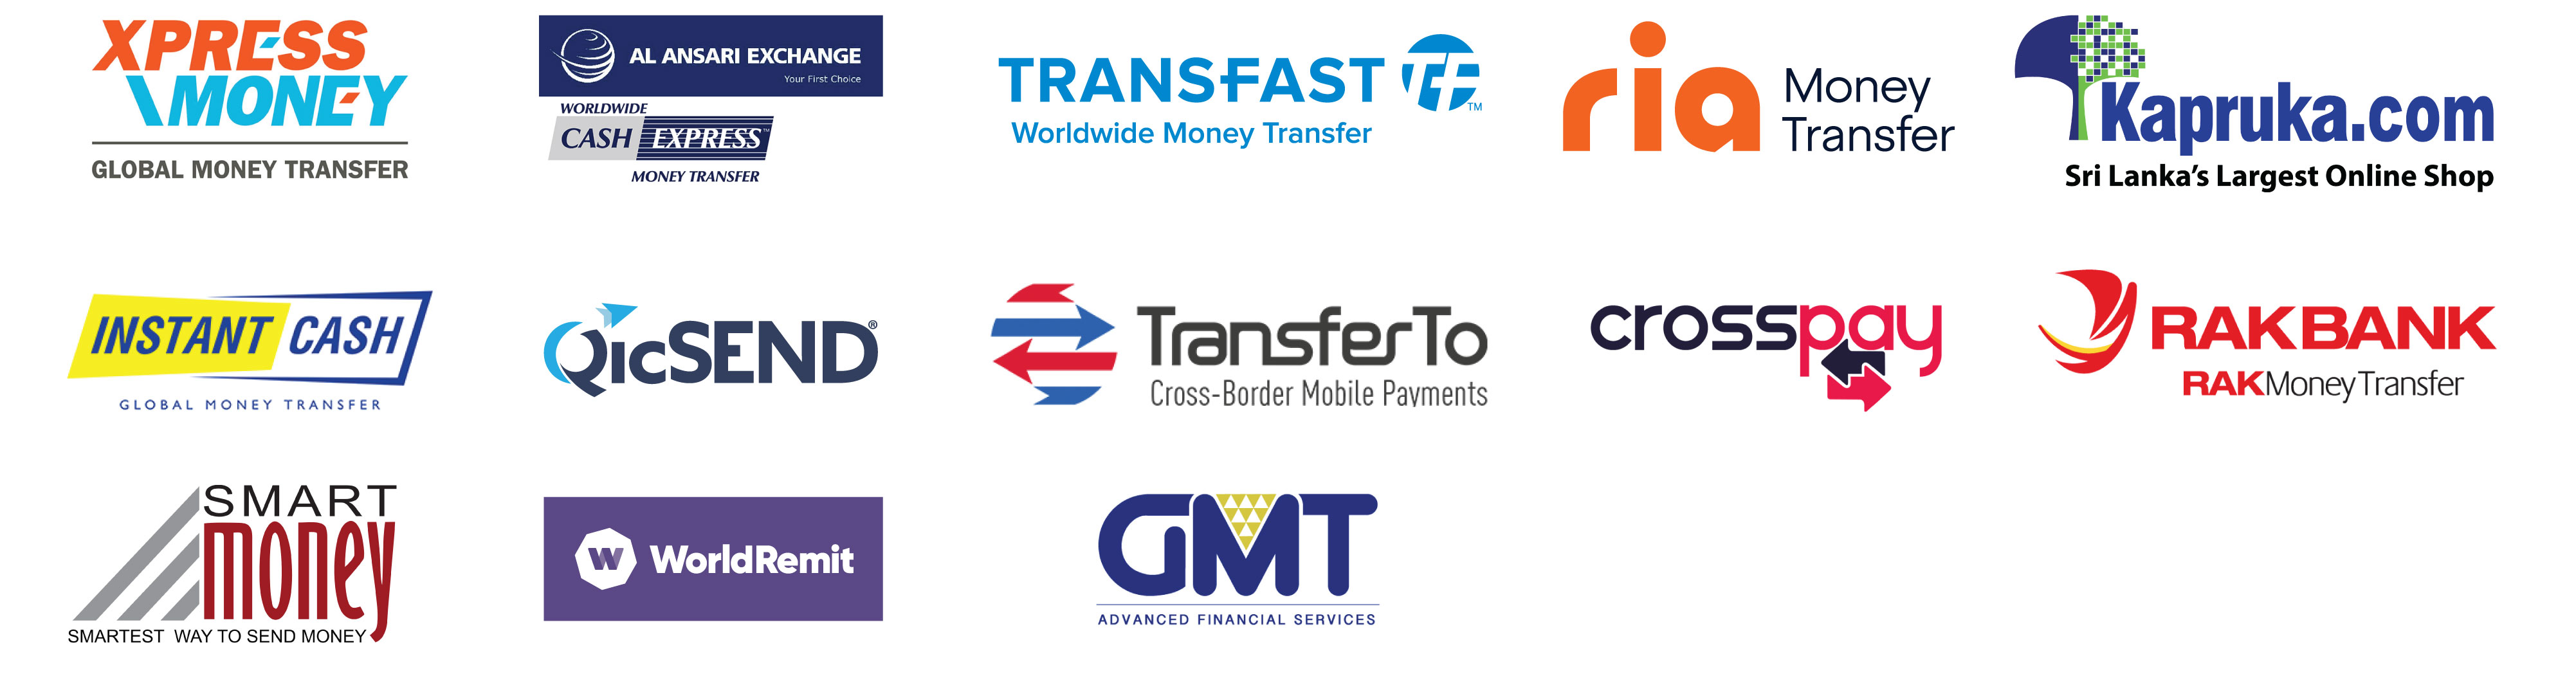 Remittance Agent Logos